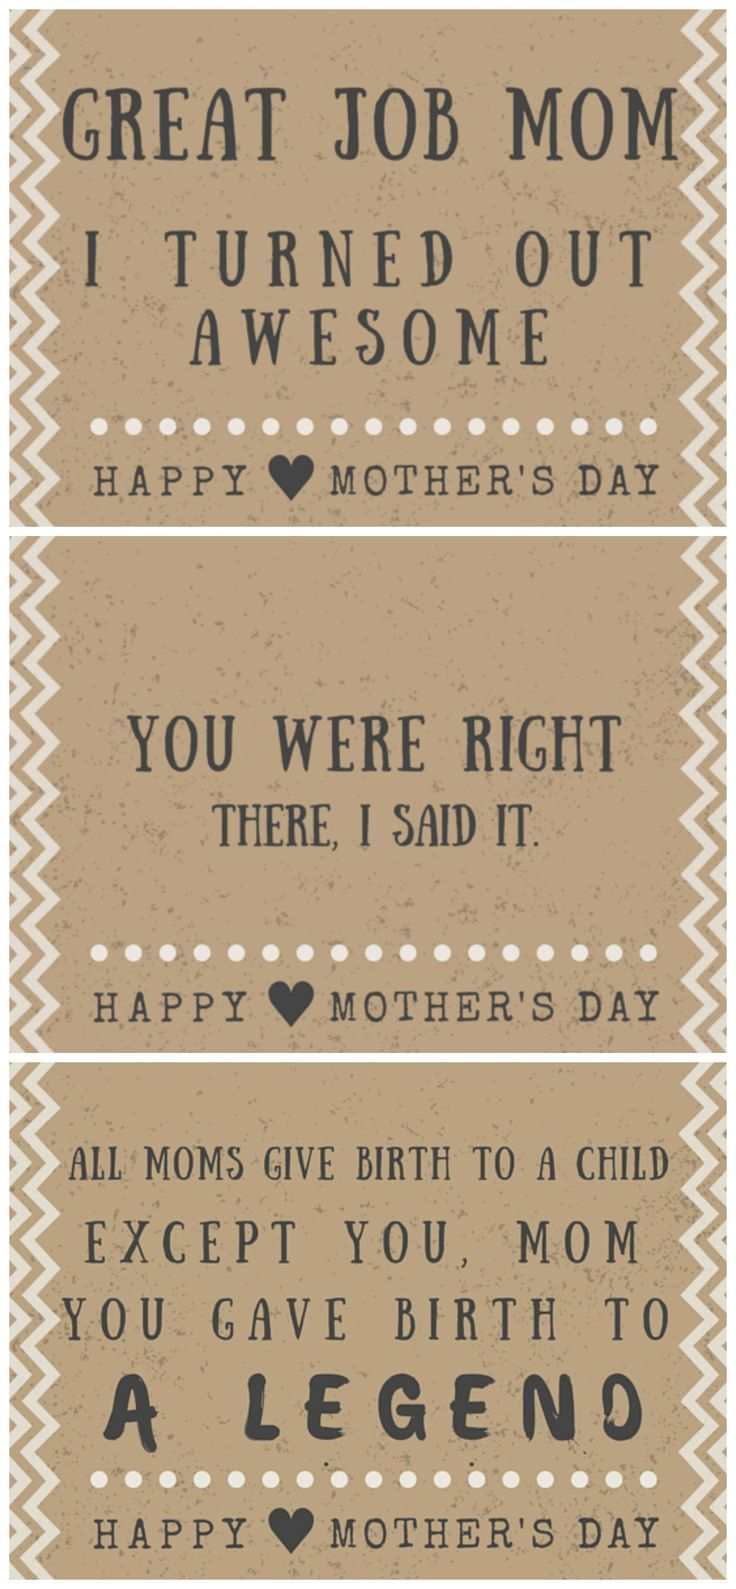 30 Funny Mother's Day Cards - Free Printables With Hilarious Quotes - Free Printable Funny Mother's Day Cards